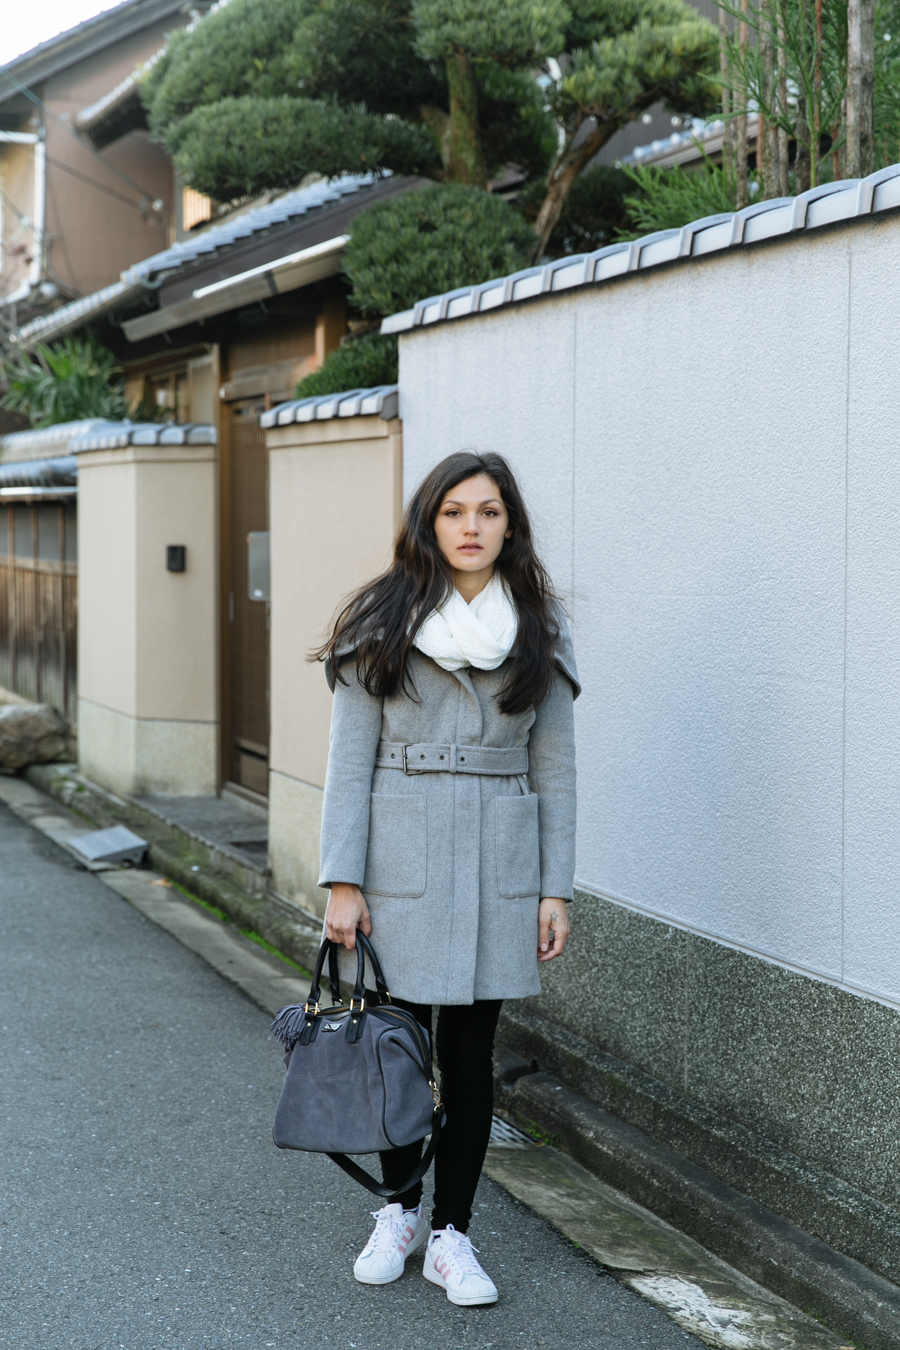 Osaka travel diary. Fashion blogger travelling in Japan.